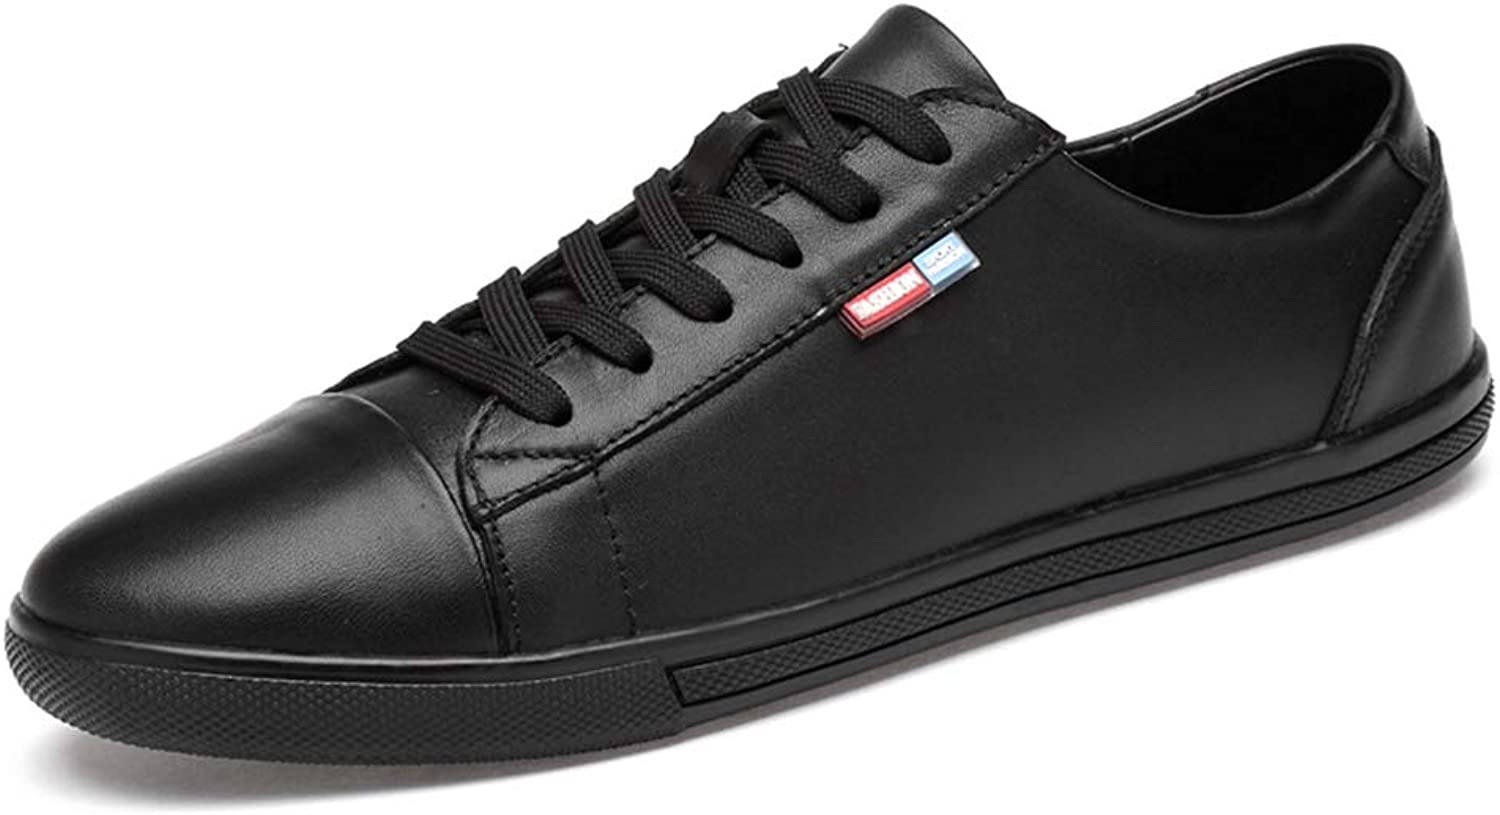 MUMUWU Lightweight Breathable Fashion Board shoes for Men Genuine Leather Outdoor Casual Flat Athletic shoes (color   Black, Size   8.5 D(M) US)